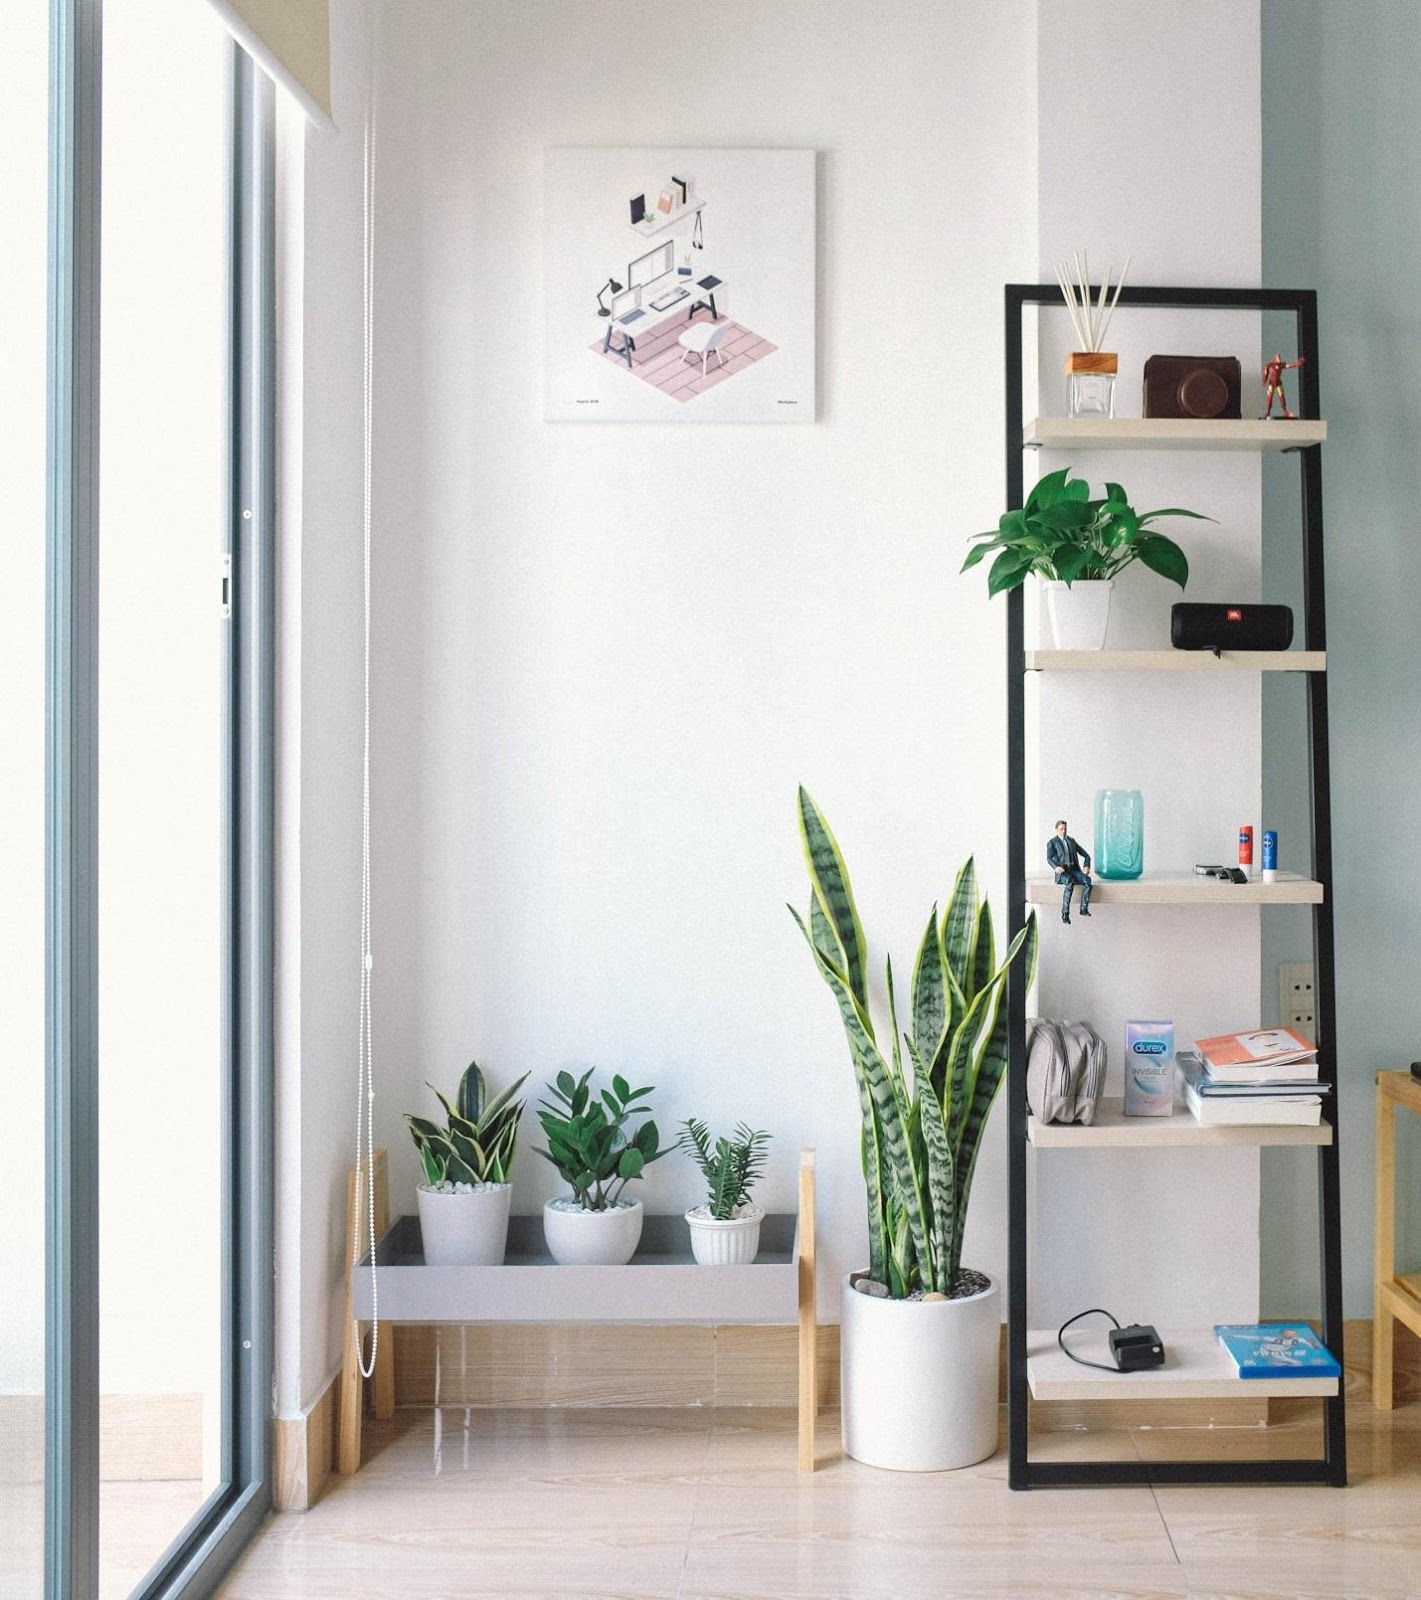 minimalist lifestyle to get the utmost peace